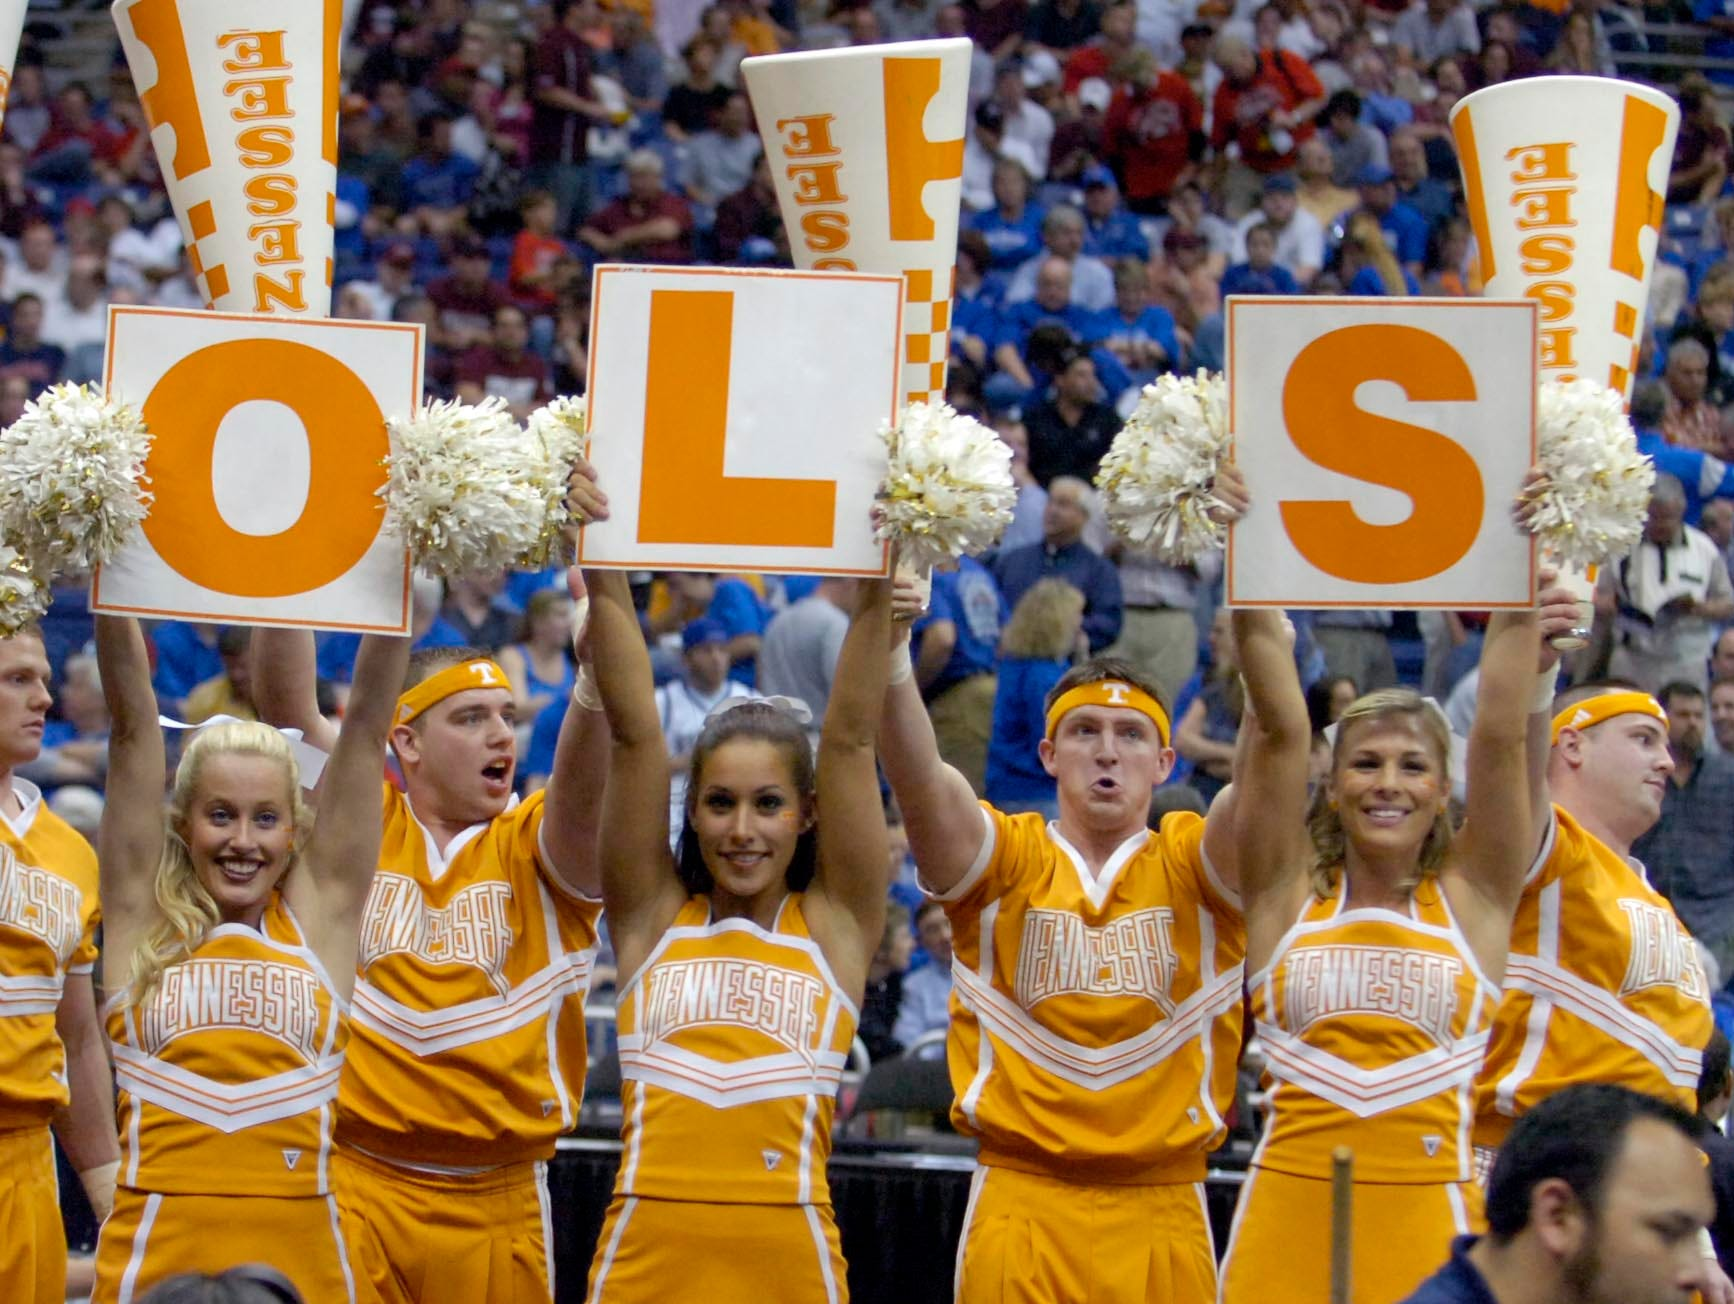 Tennessee cheerleaders back the Vols against Ohio State during the NCAA basketball tournament South Regional semifinals on Thursday in San Antonio, Texas. Tennessee lost the game 85-84.